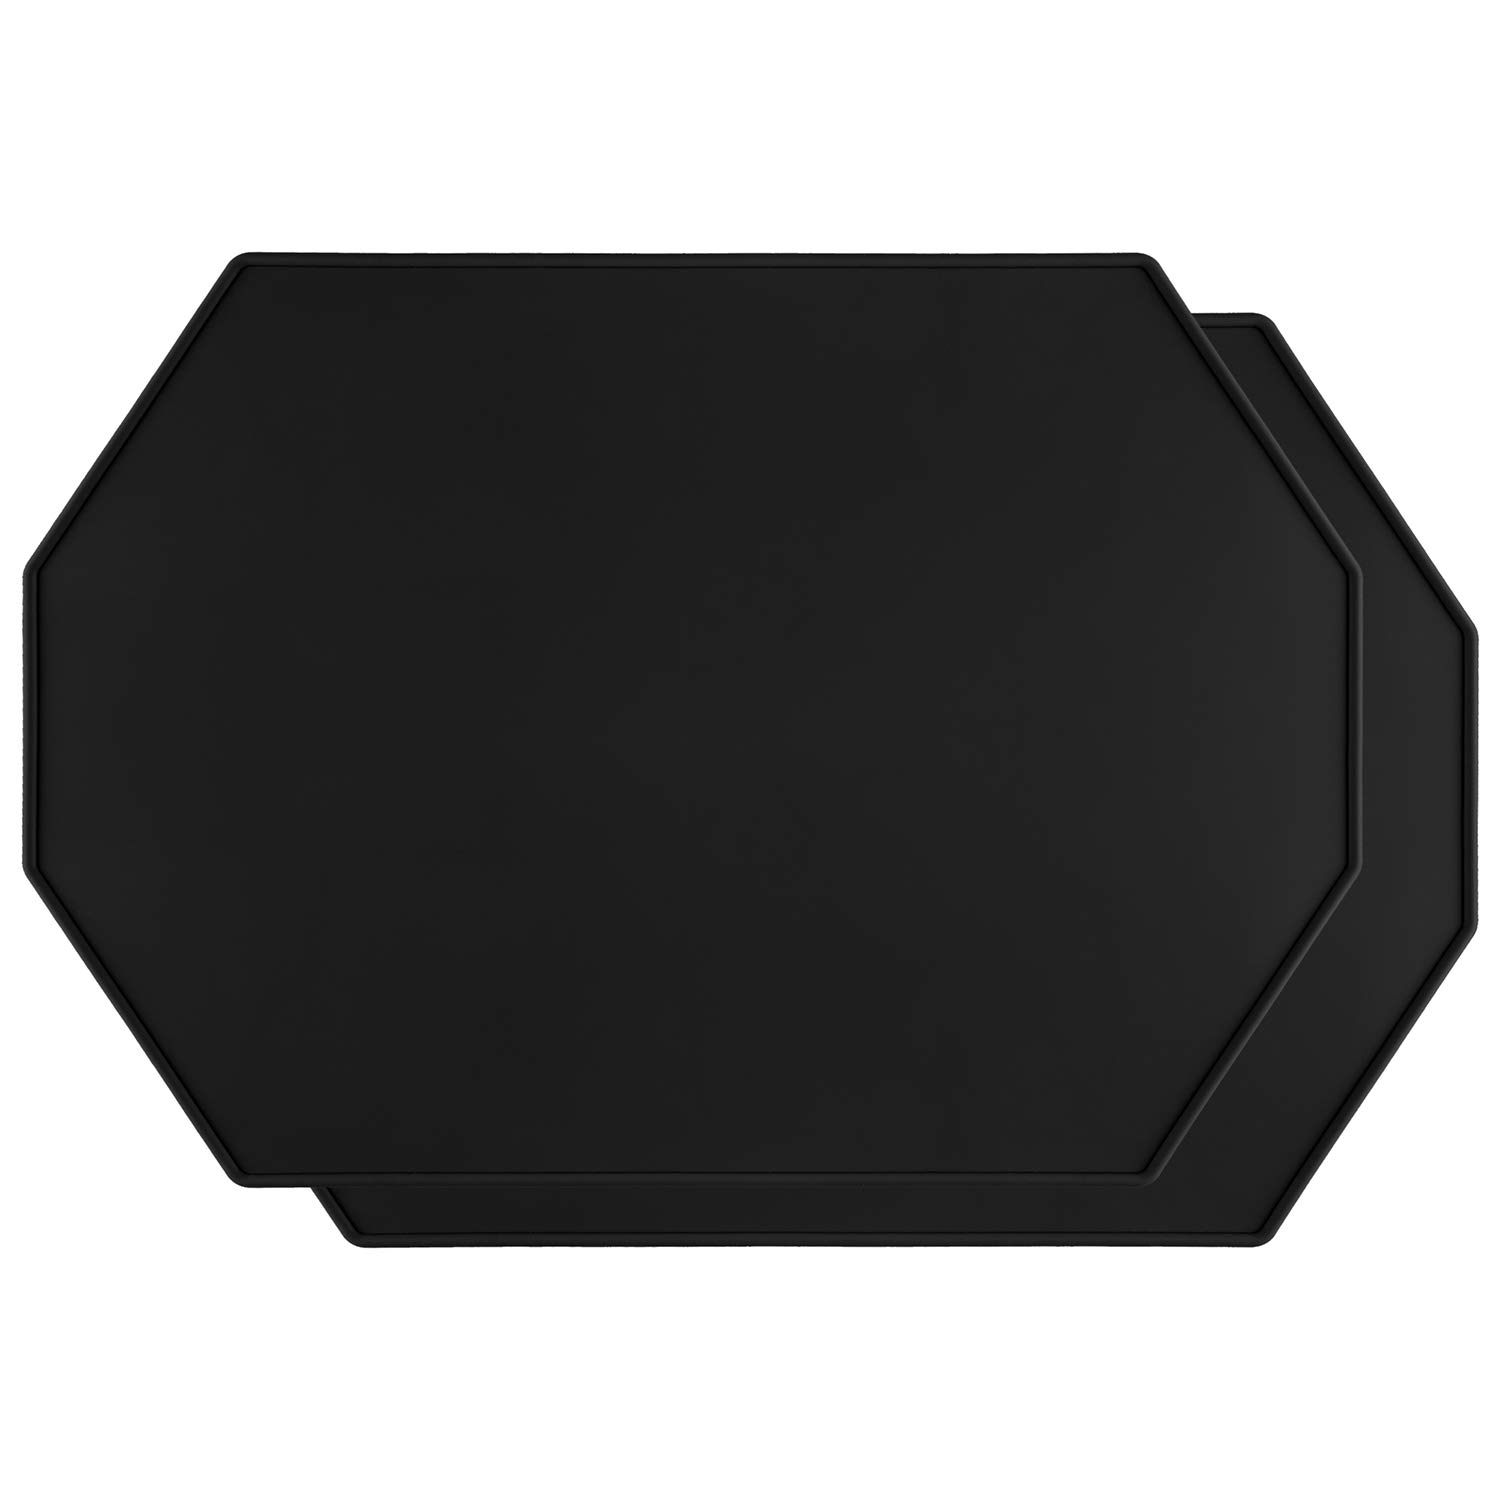 Lazy K Silicone Placemats - Octagon with Raised Edges - Non Slip Waterproof - Simple Modern Design - Heat-Resistant Kitchen Table Mats - Black (Set of 2)